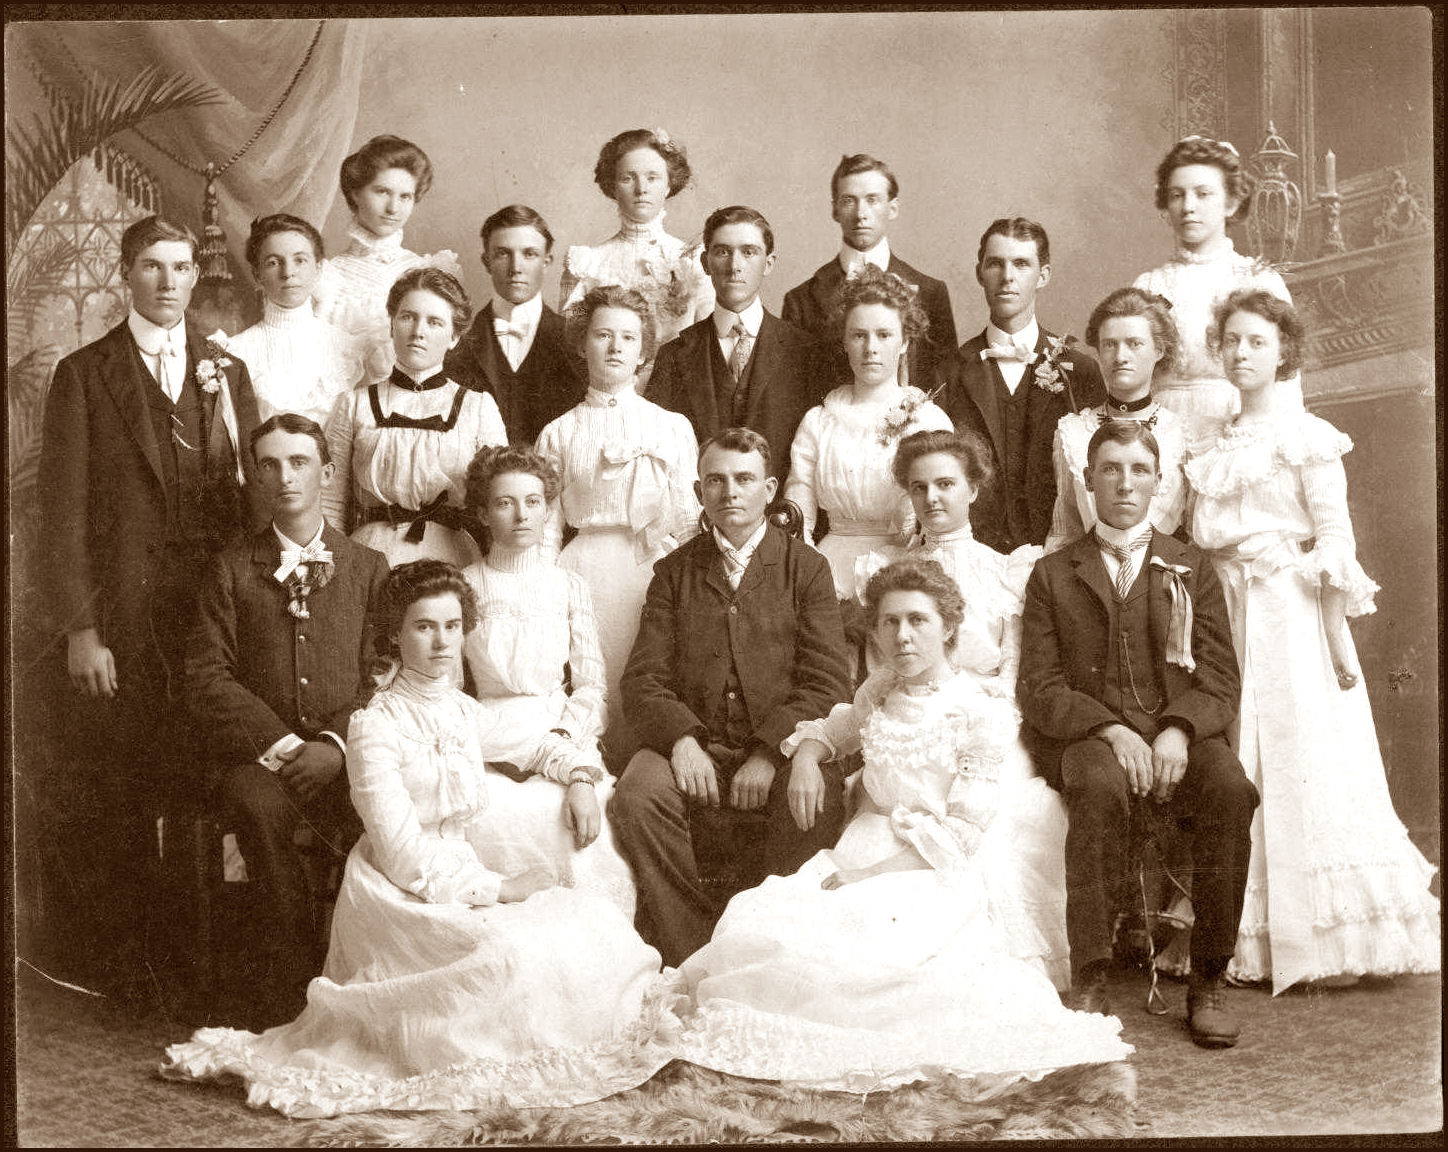 WAYNE CO., NEGENWEB PROJECT - FACULTY AND CLASSES OF 1901 NEBRASKA NORMAL  COLLEGE